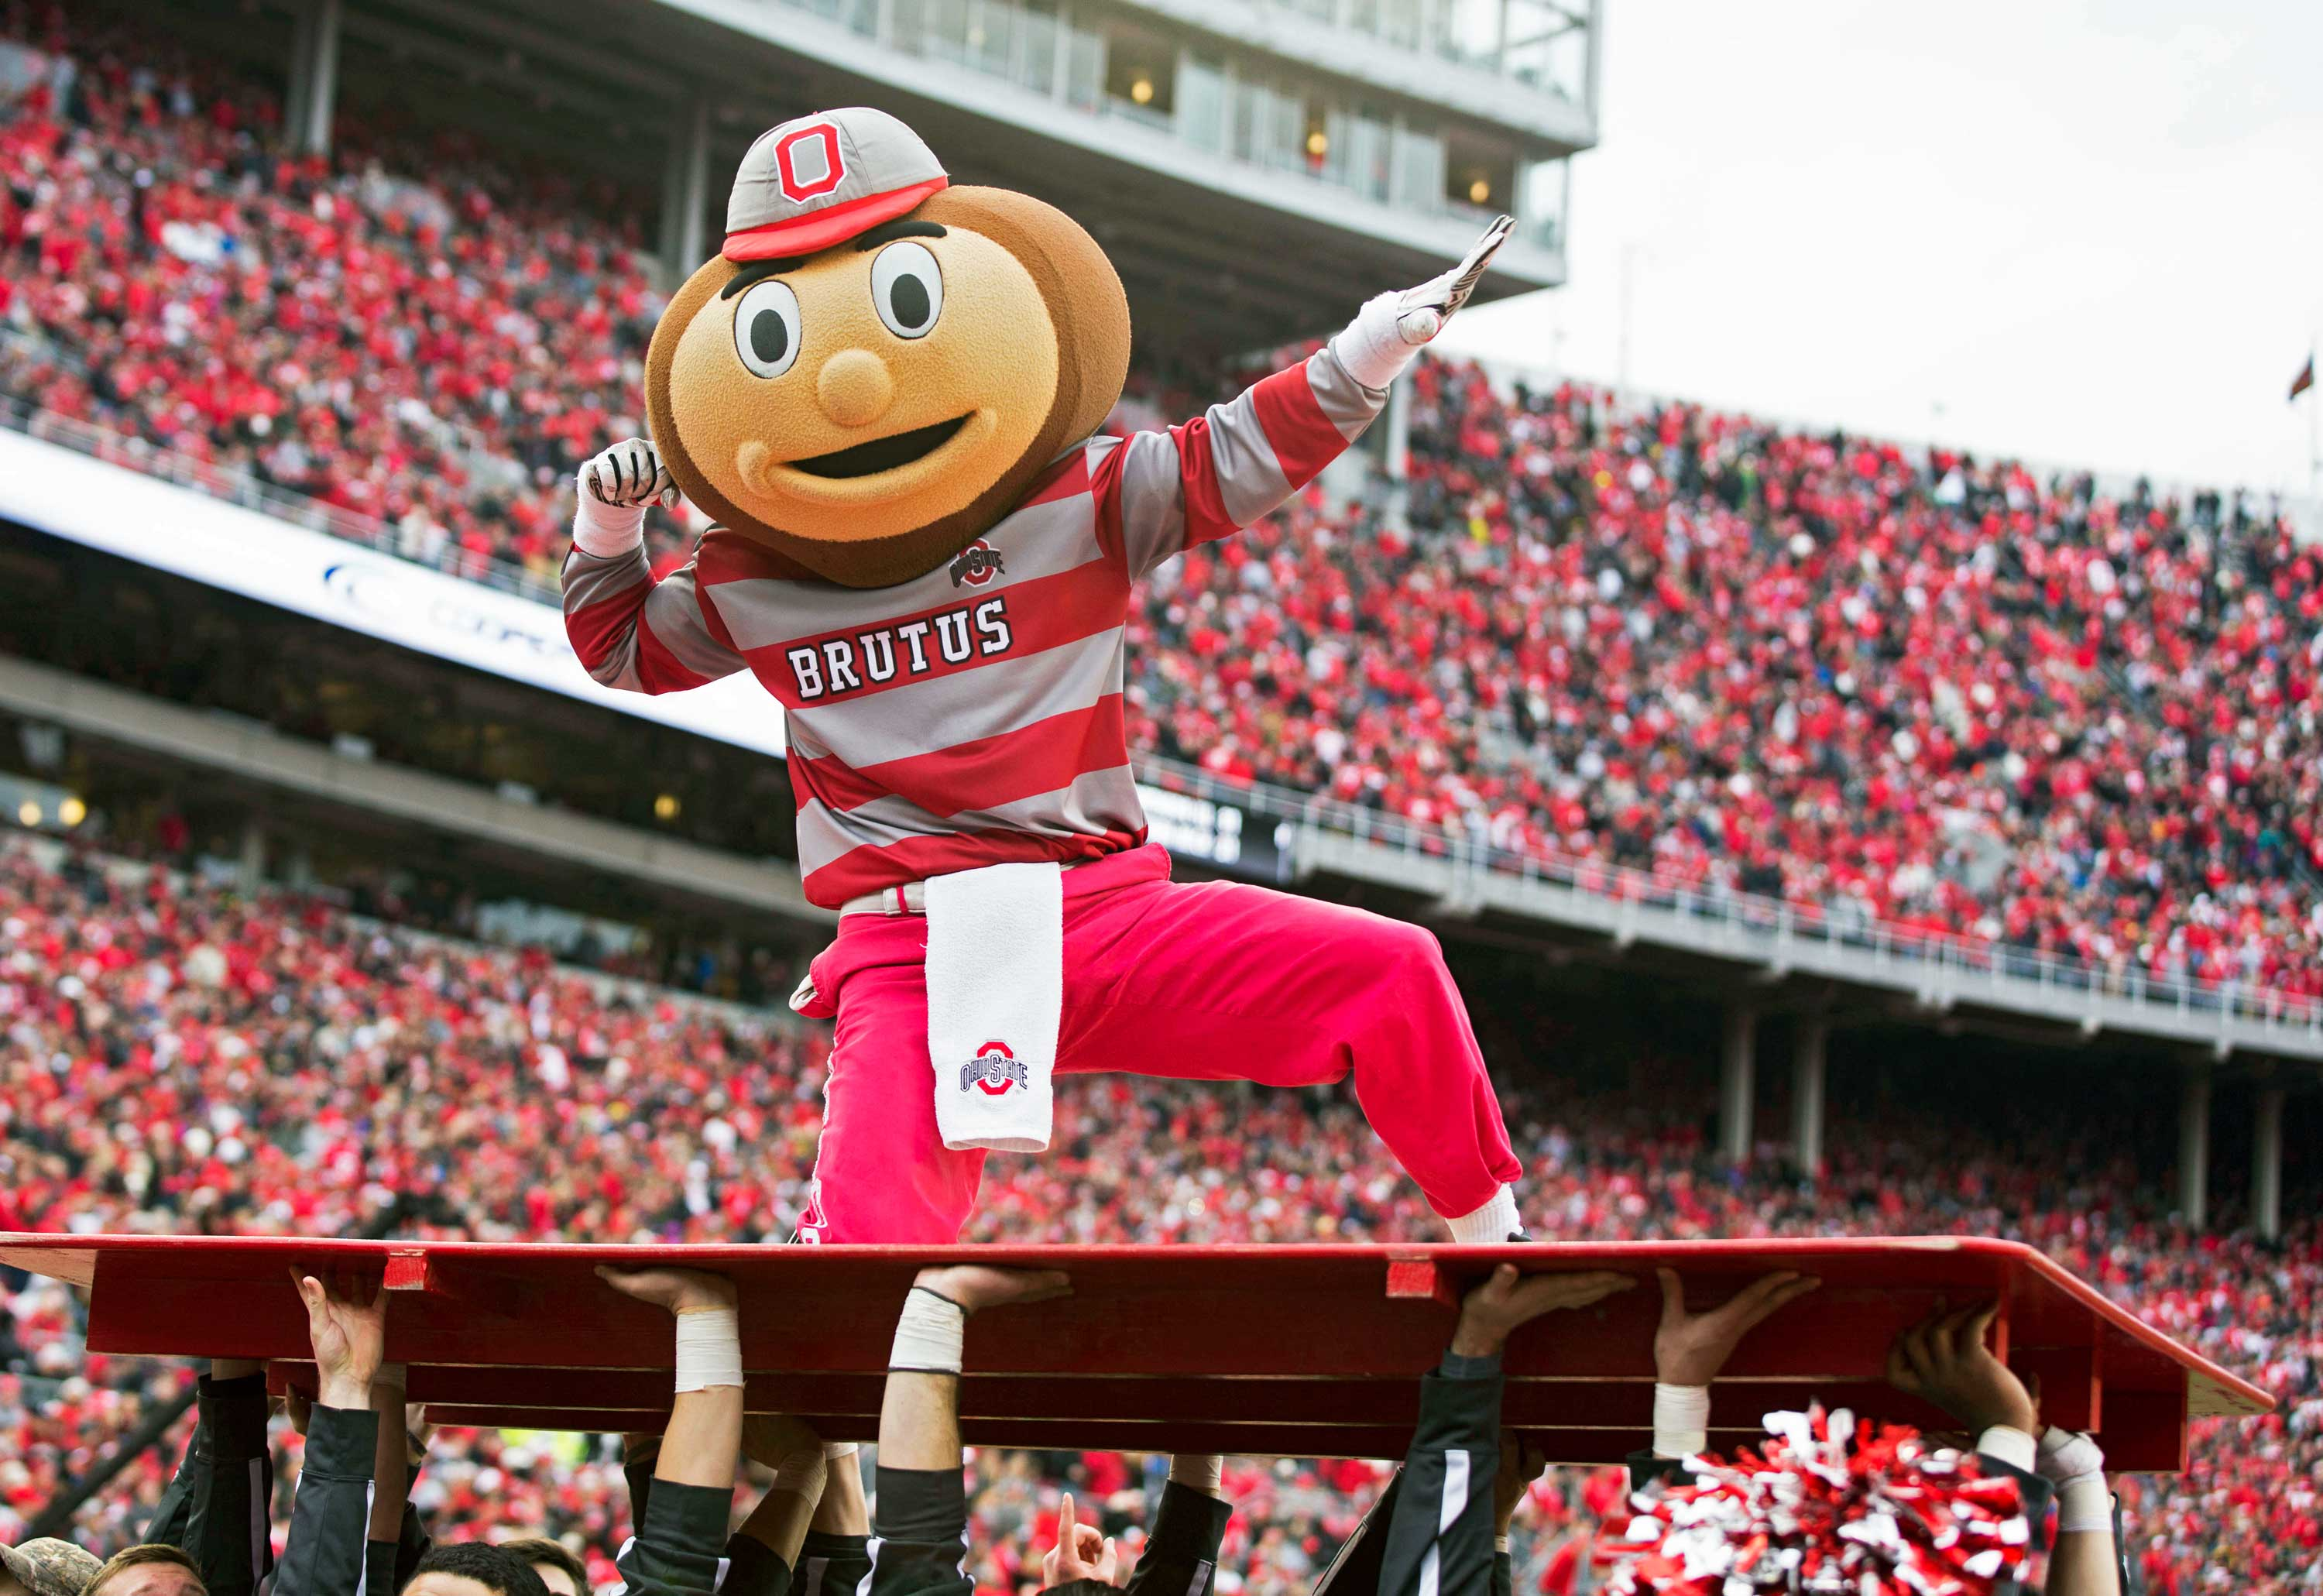 Nov 29, 2014; Columbus, OH, USA; Ohio State Buckeyes mascot Brutus Buckeye celebrates near the end of the game against the Michigan Wolverines at Ohio Stadium. Ohio State won the game 42-28. Mandatory Credit: Greg Bartram-USA TODAY Sports